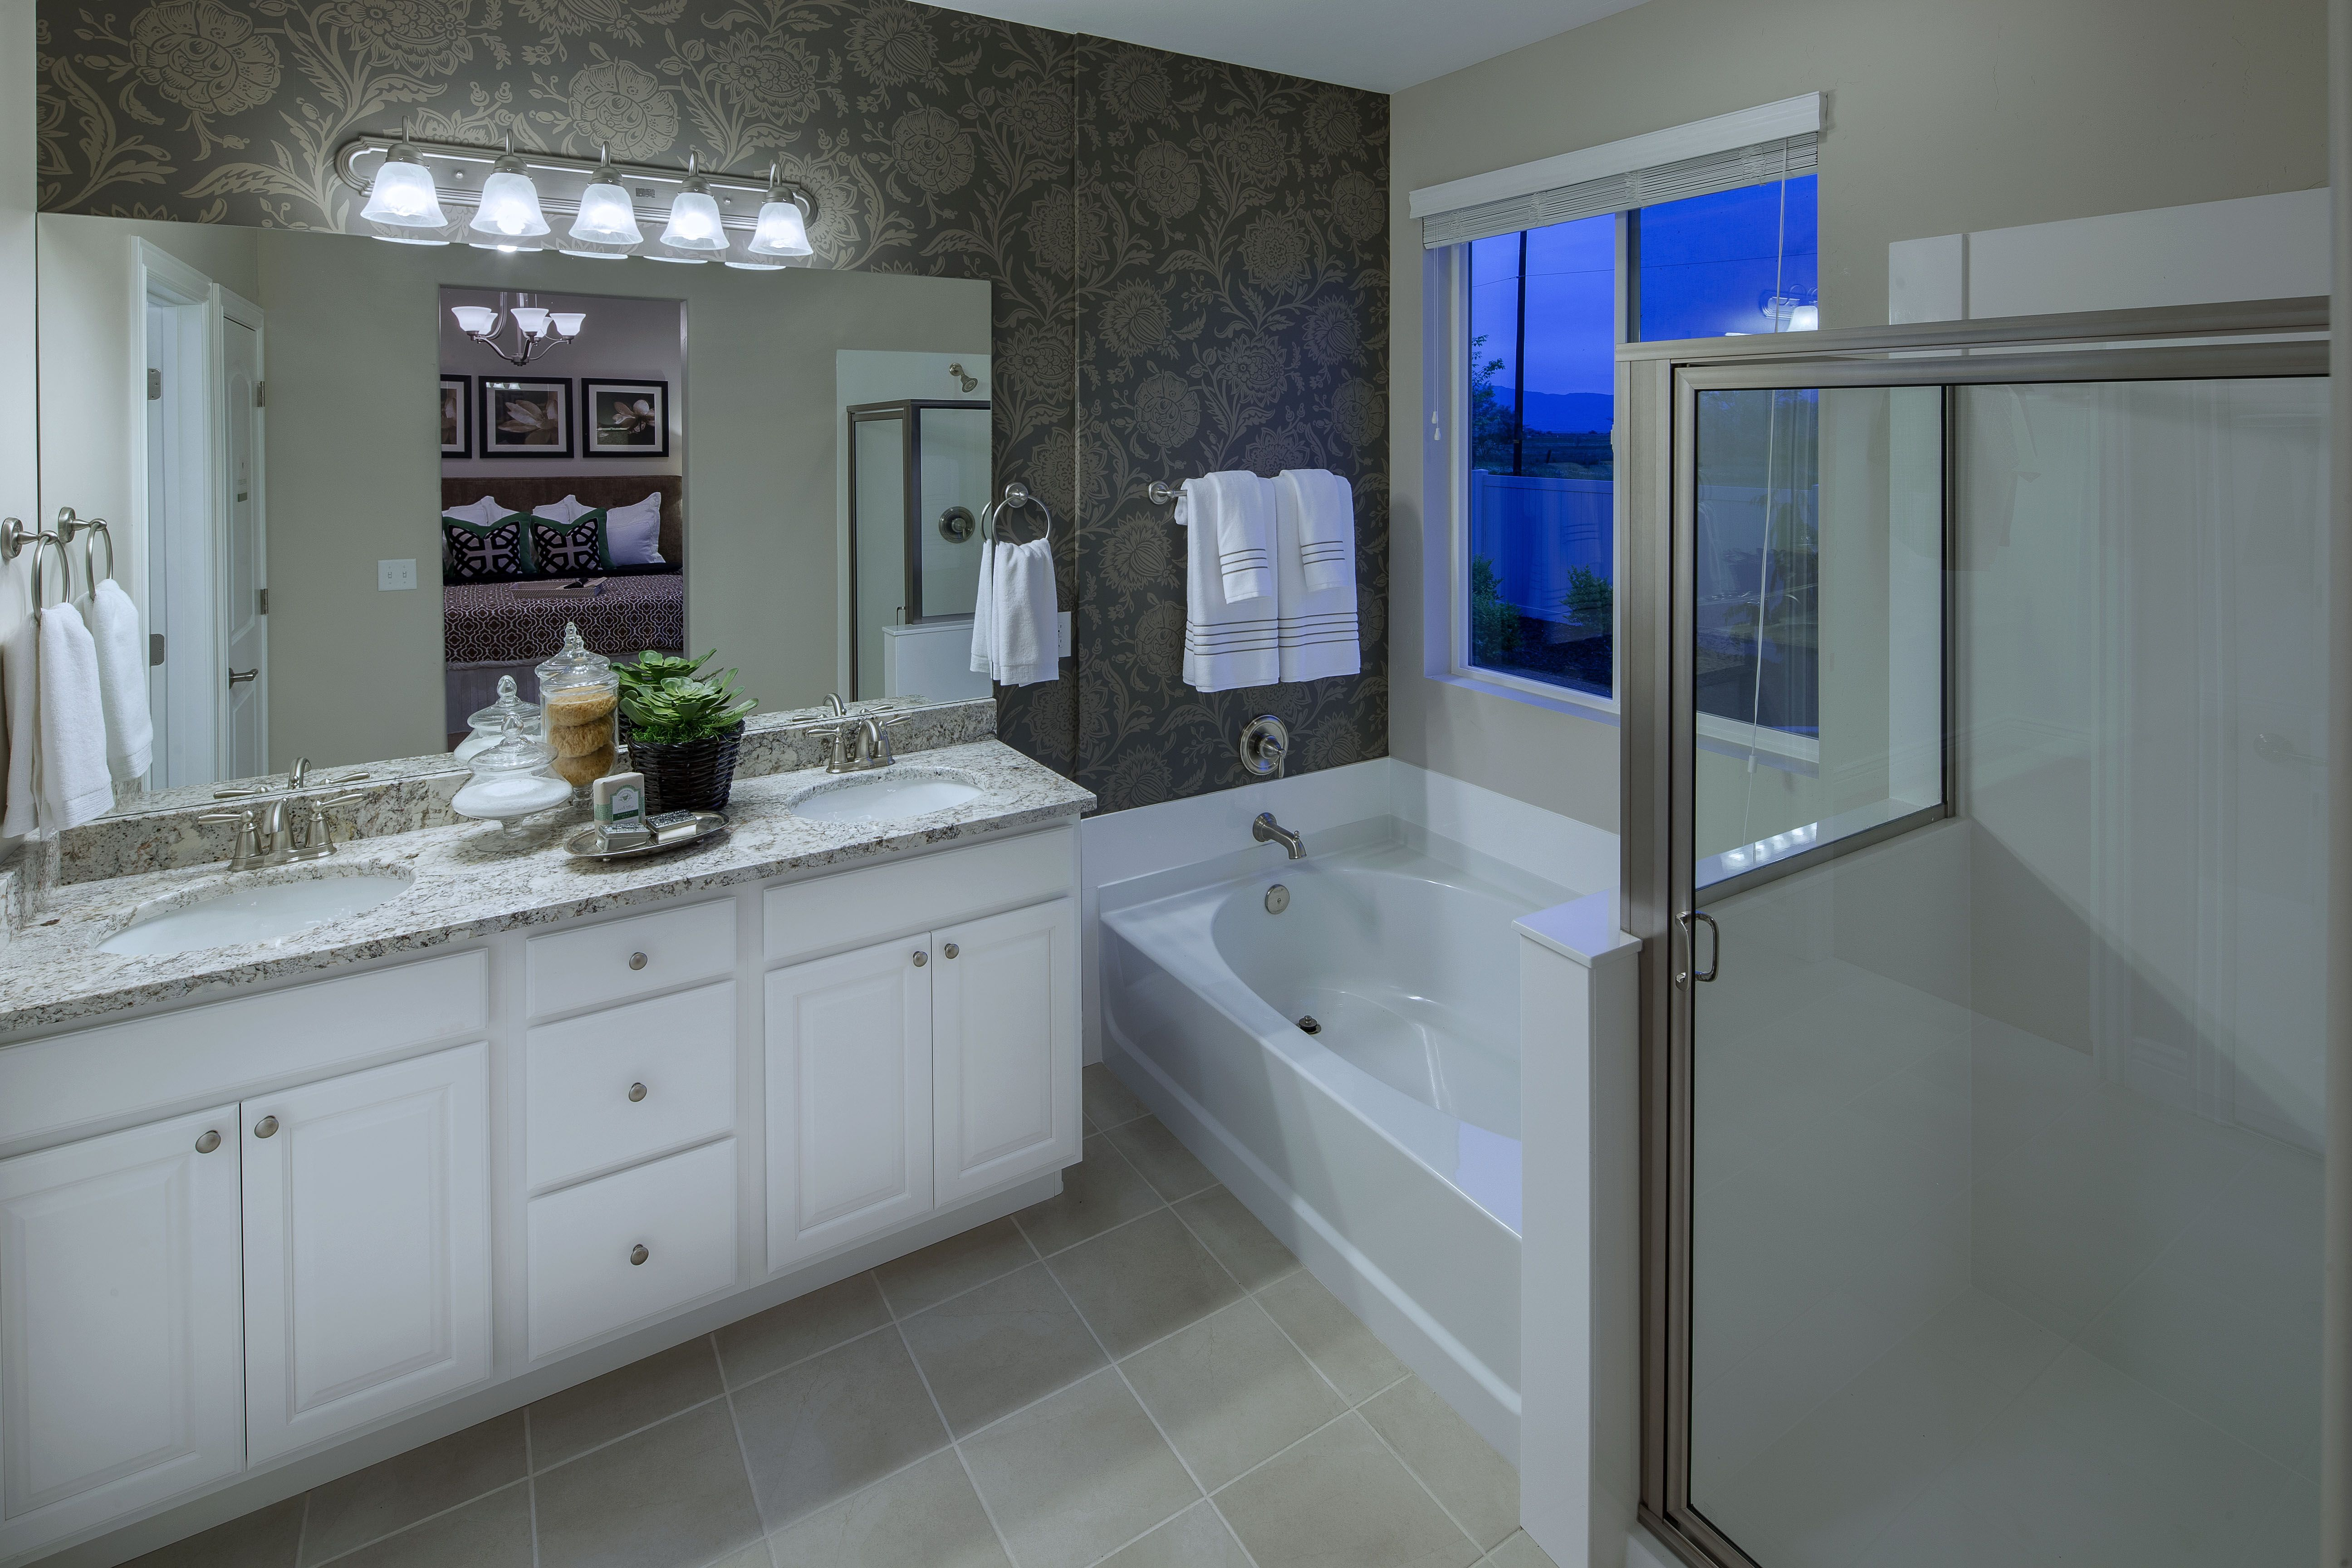 Do you prefer two sinks or extra counter space? Just another option ...